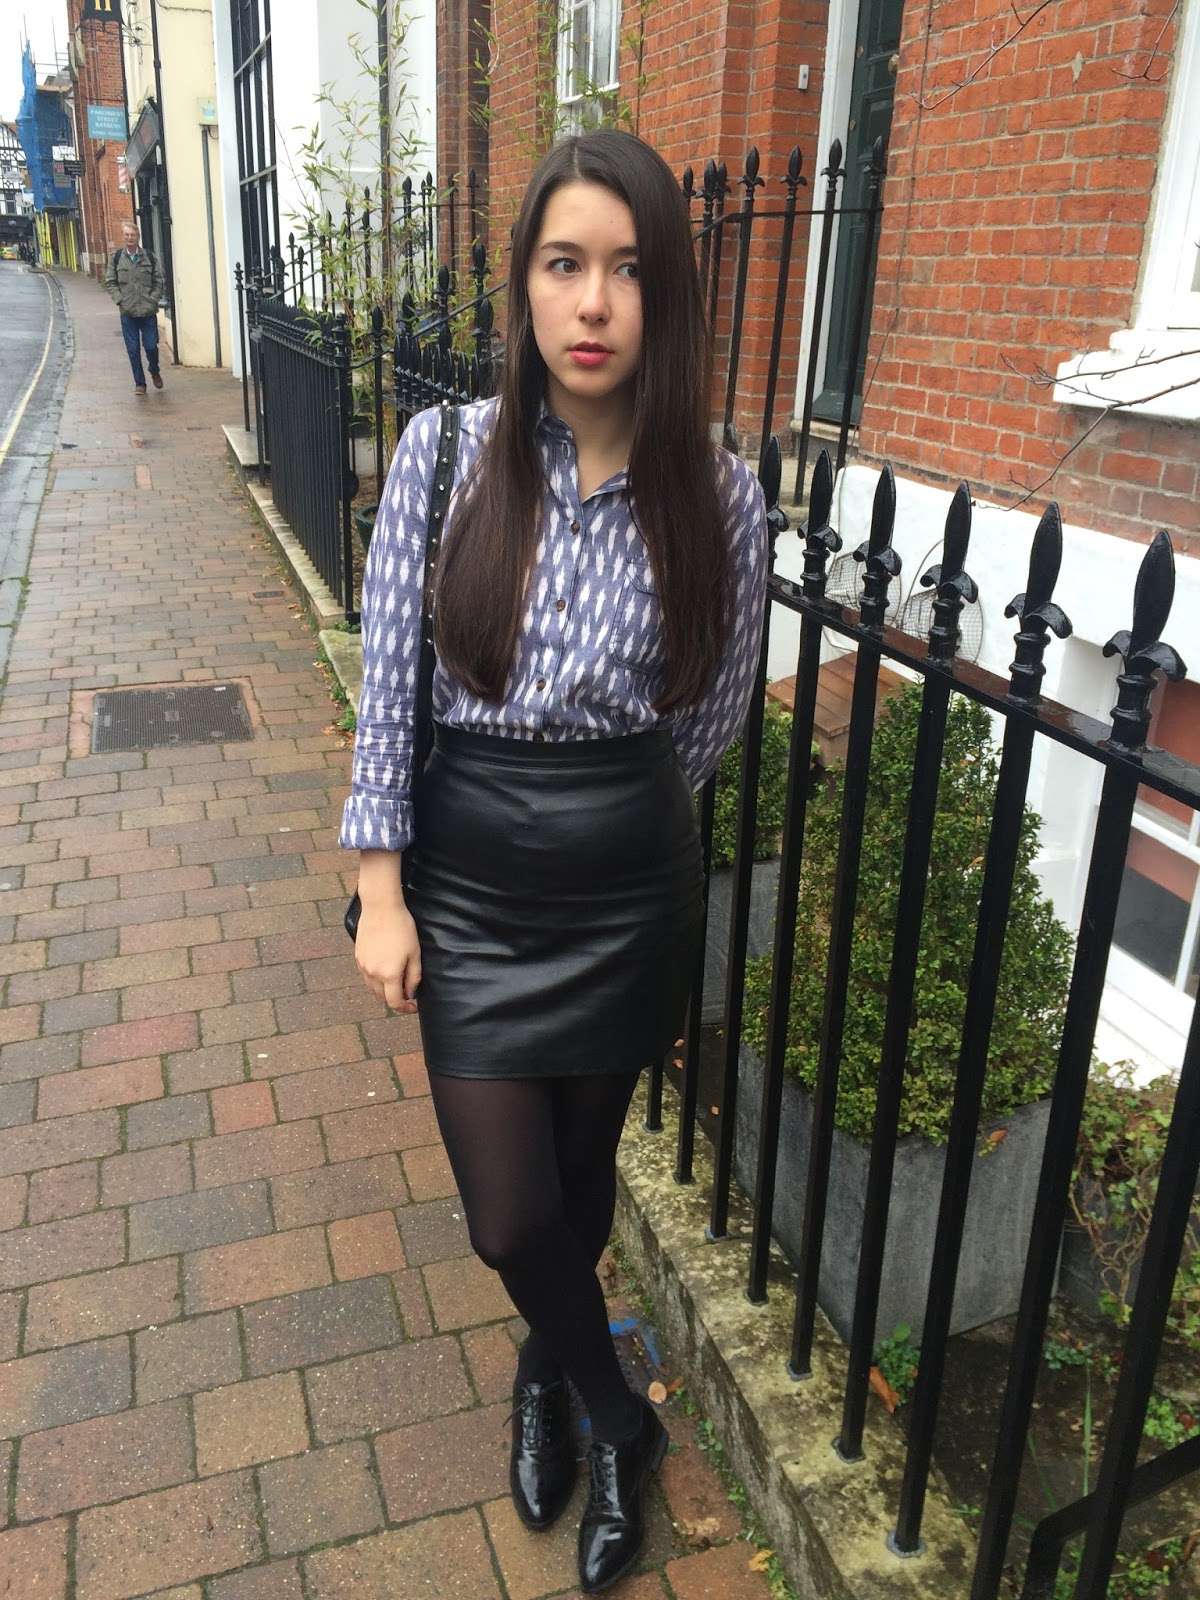 ootd, street style, blogger, fashion, skirt, box bag, brogues, autumn